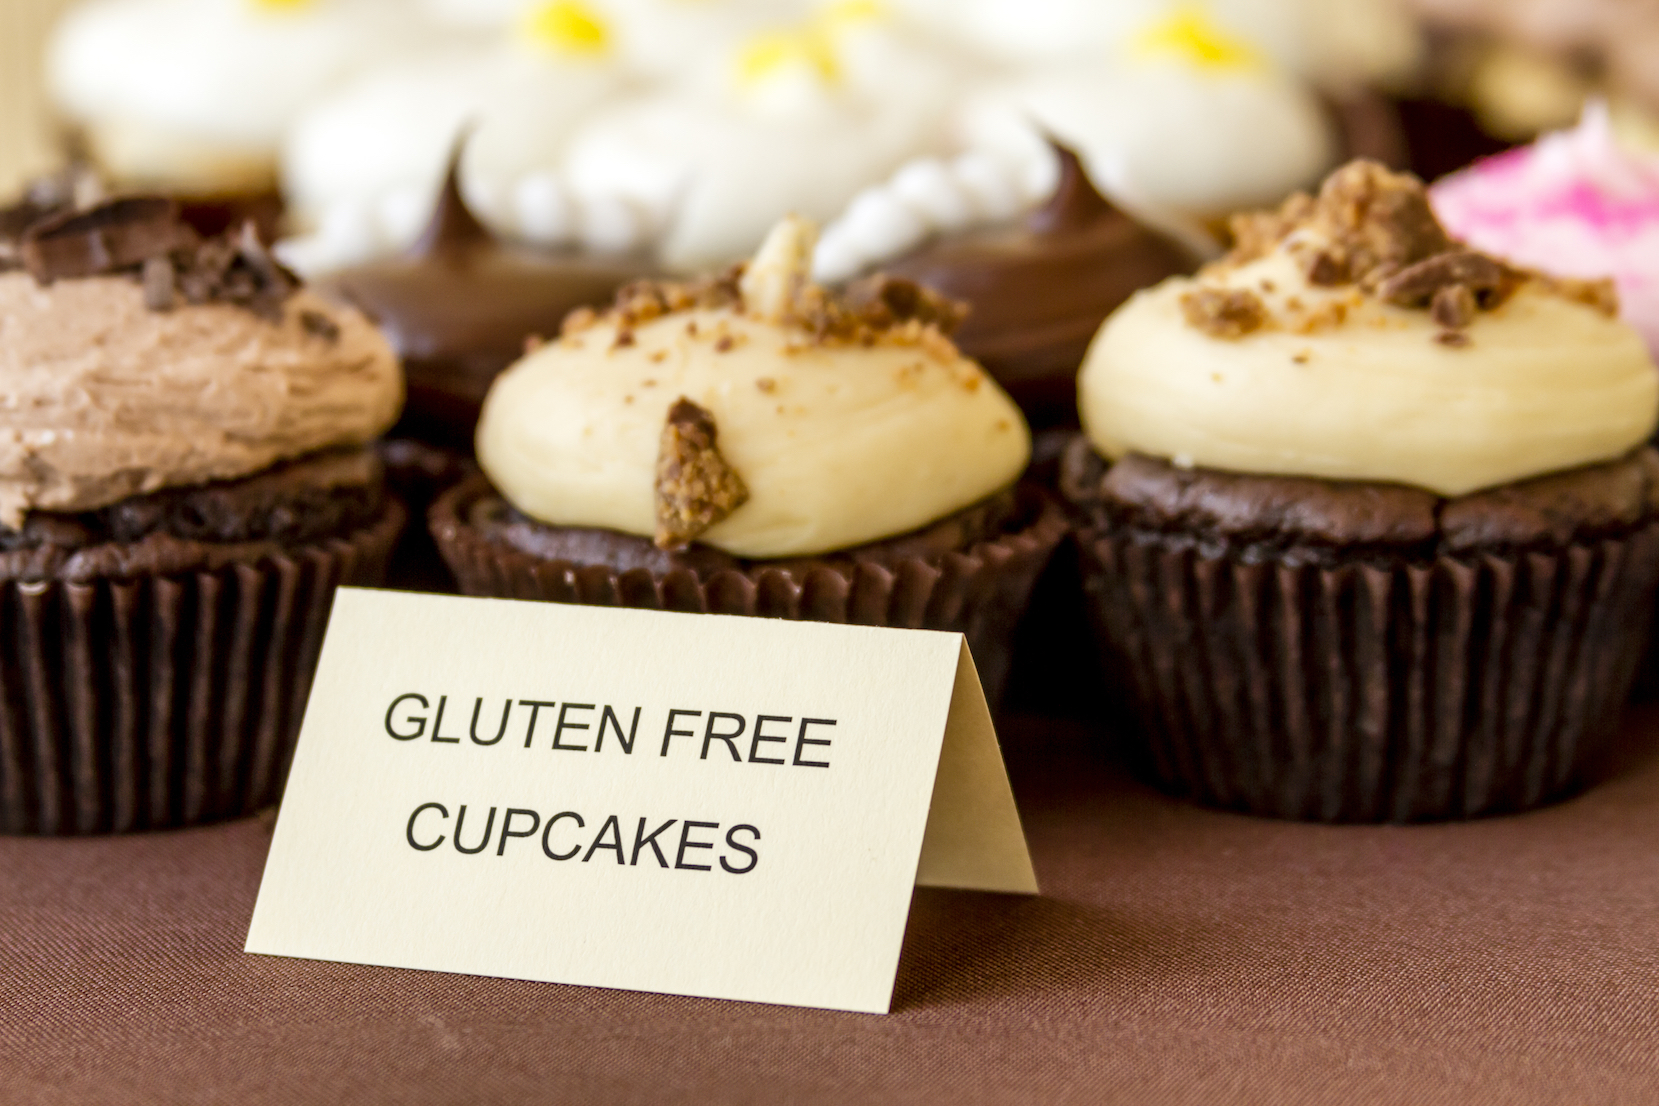 Gluten-free products often have misleading labeling and may not be as healthy as food containing gluten, according to a new study.